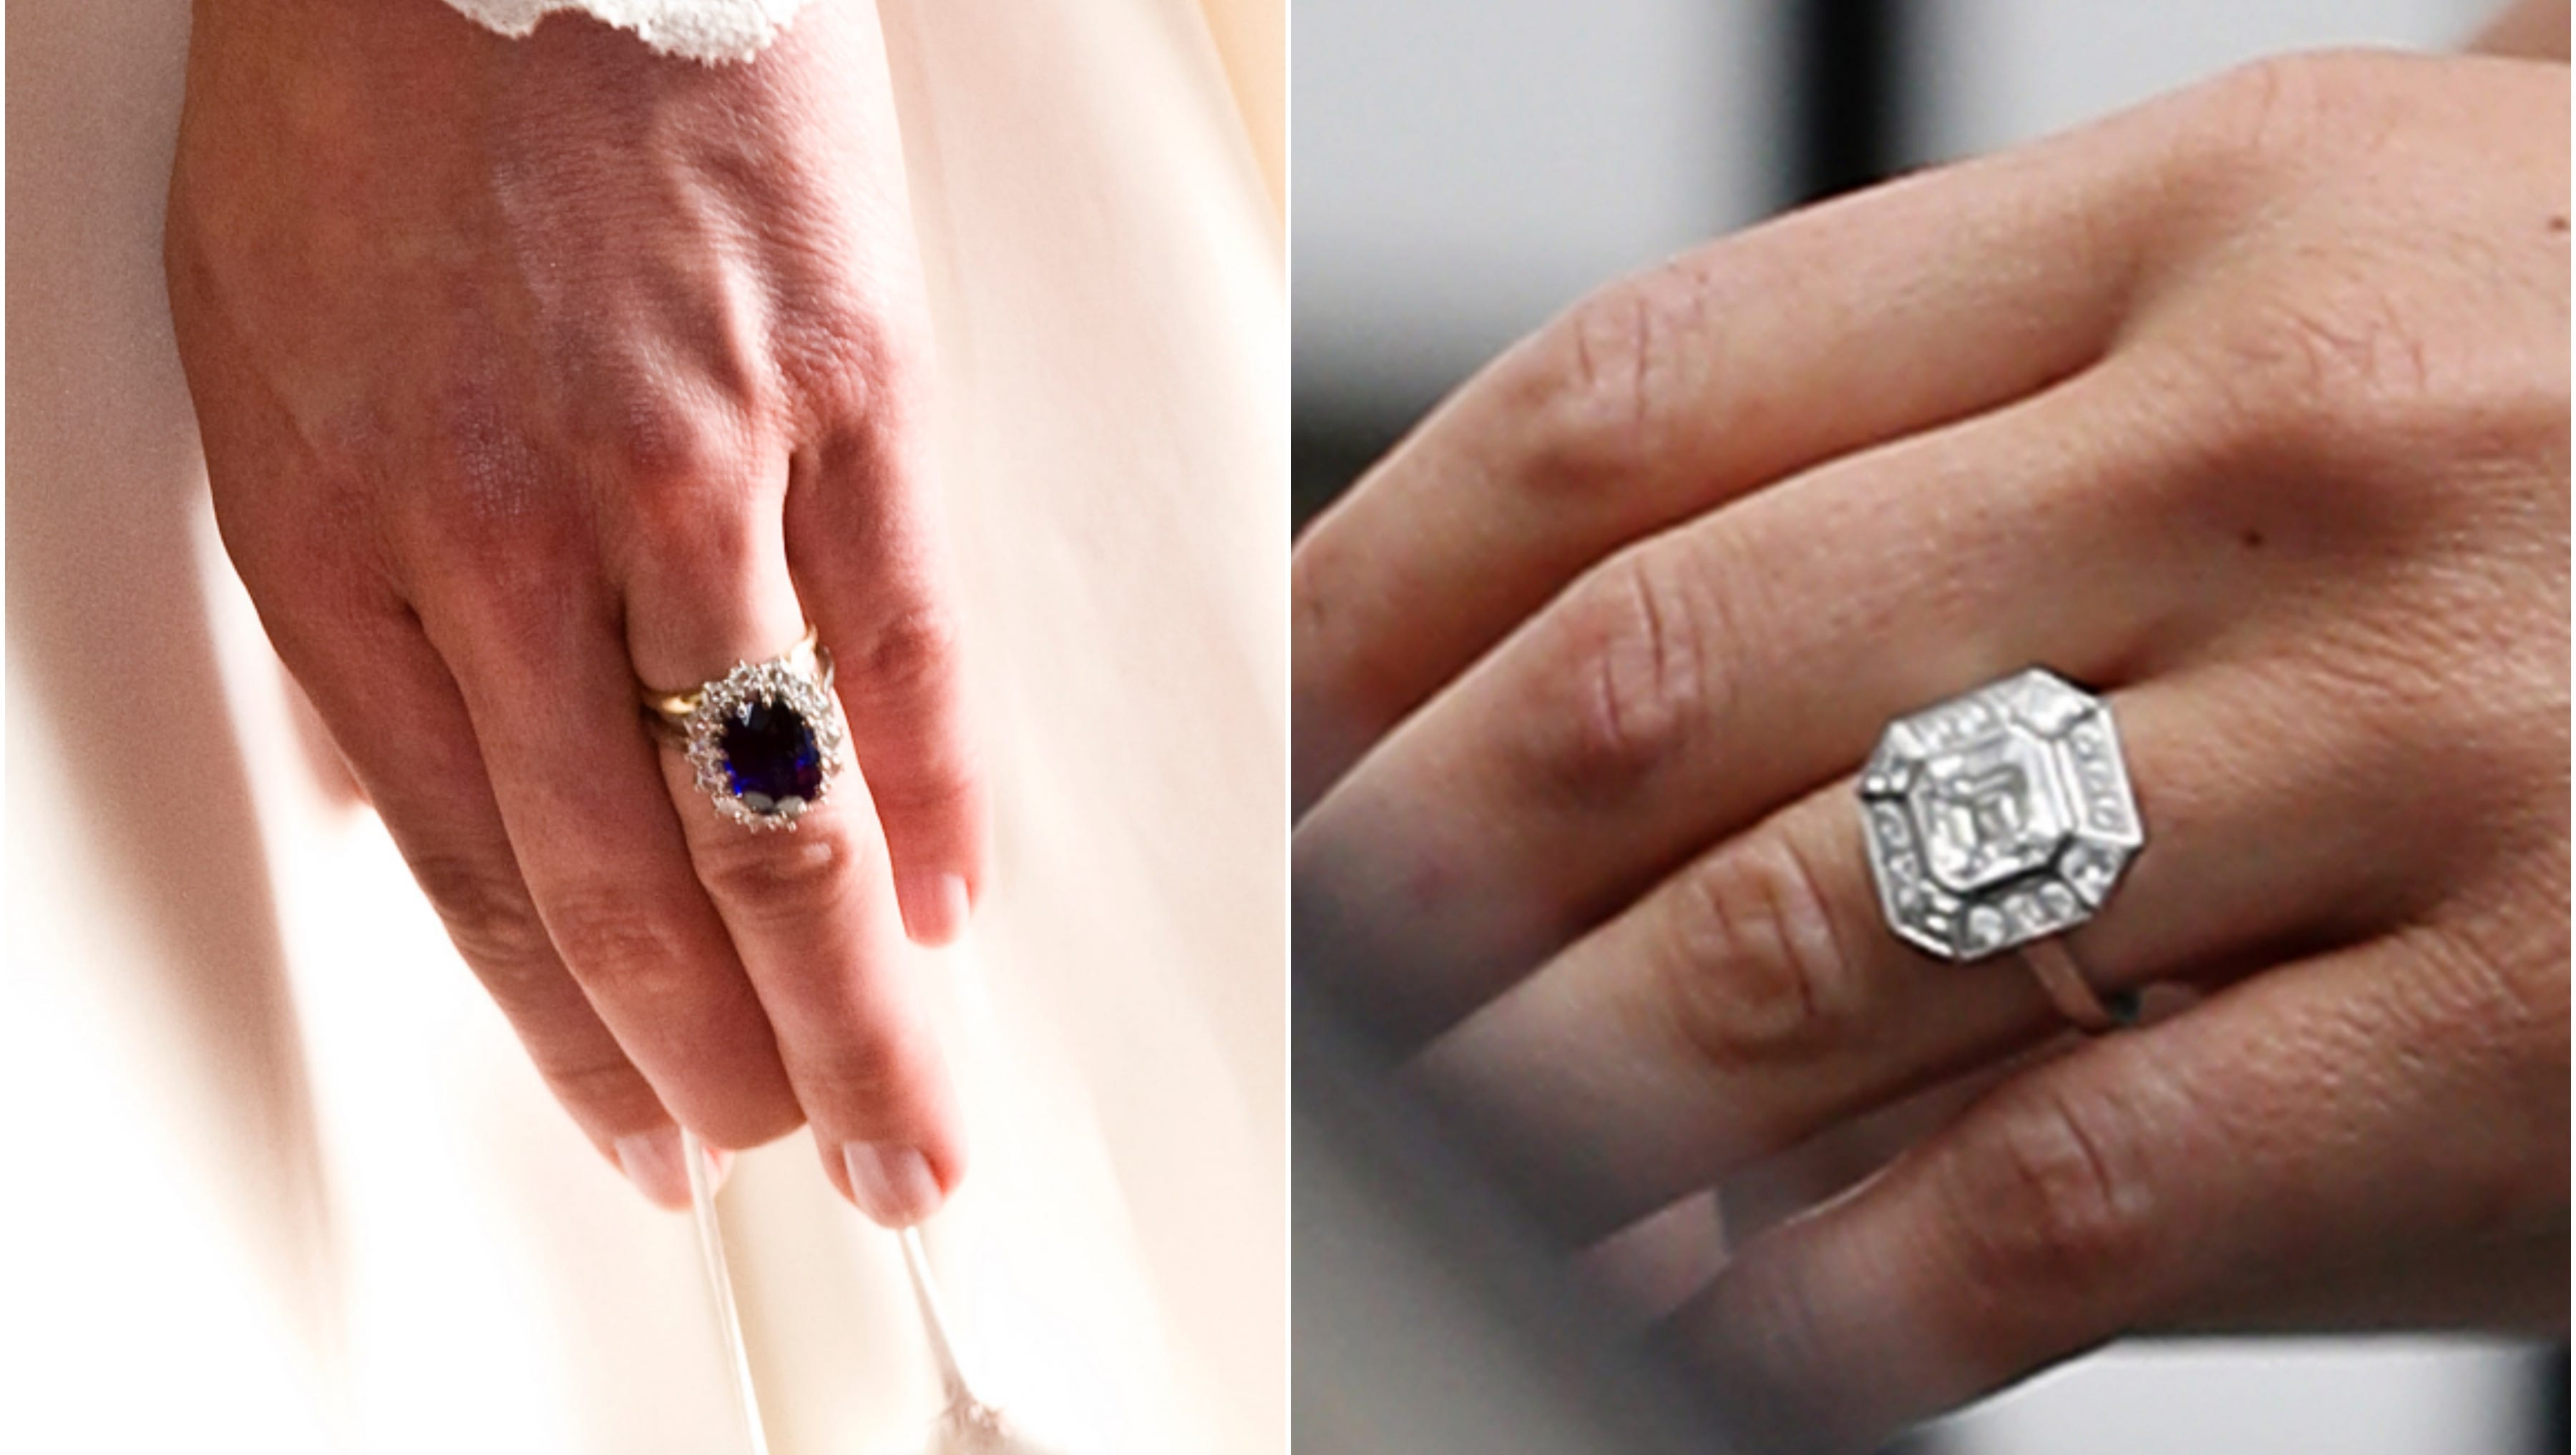 whose bling is better pippa s or kate s whose bling is better pippa s or kate s